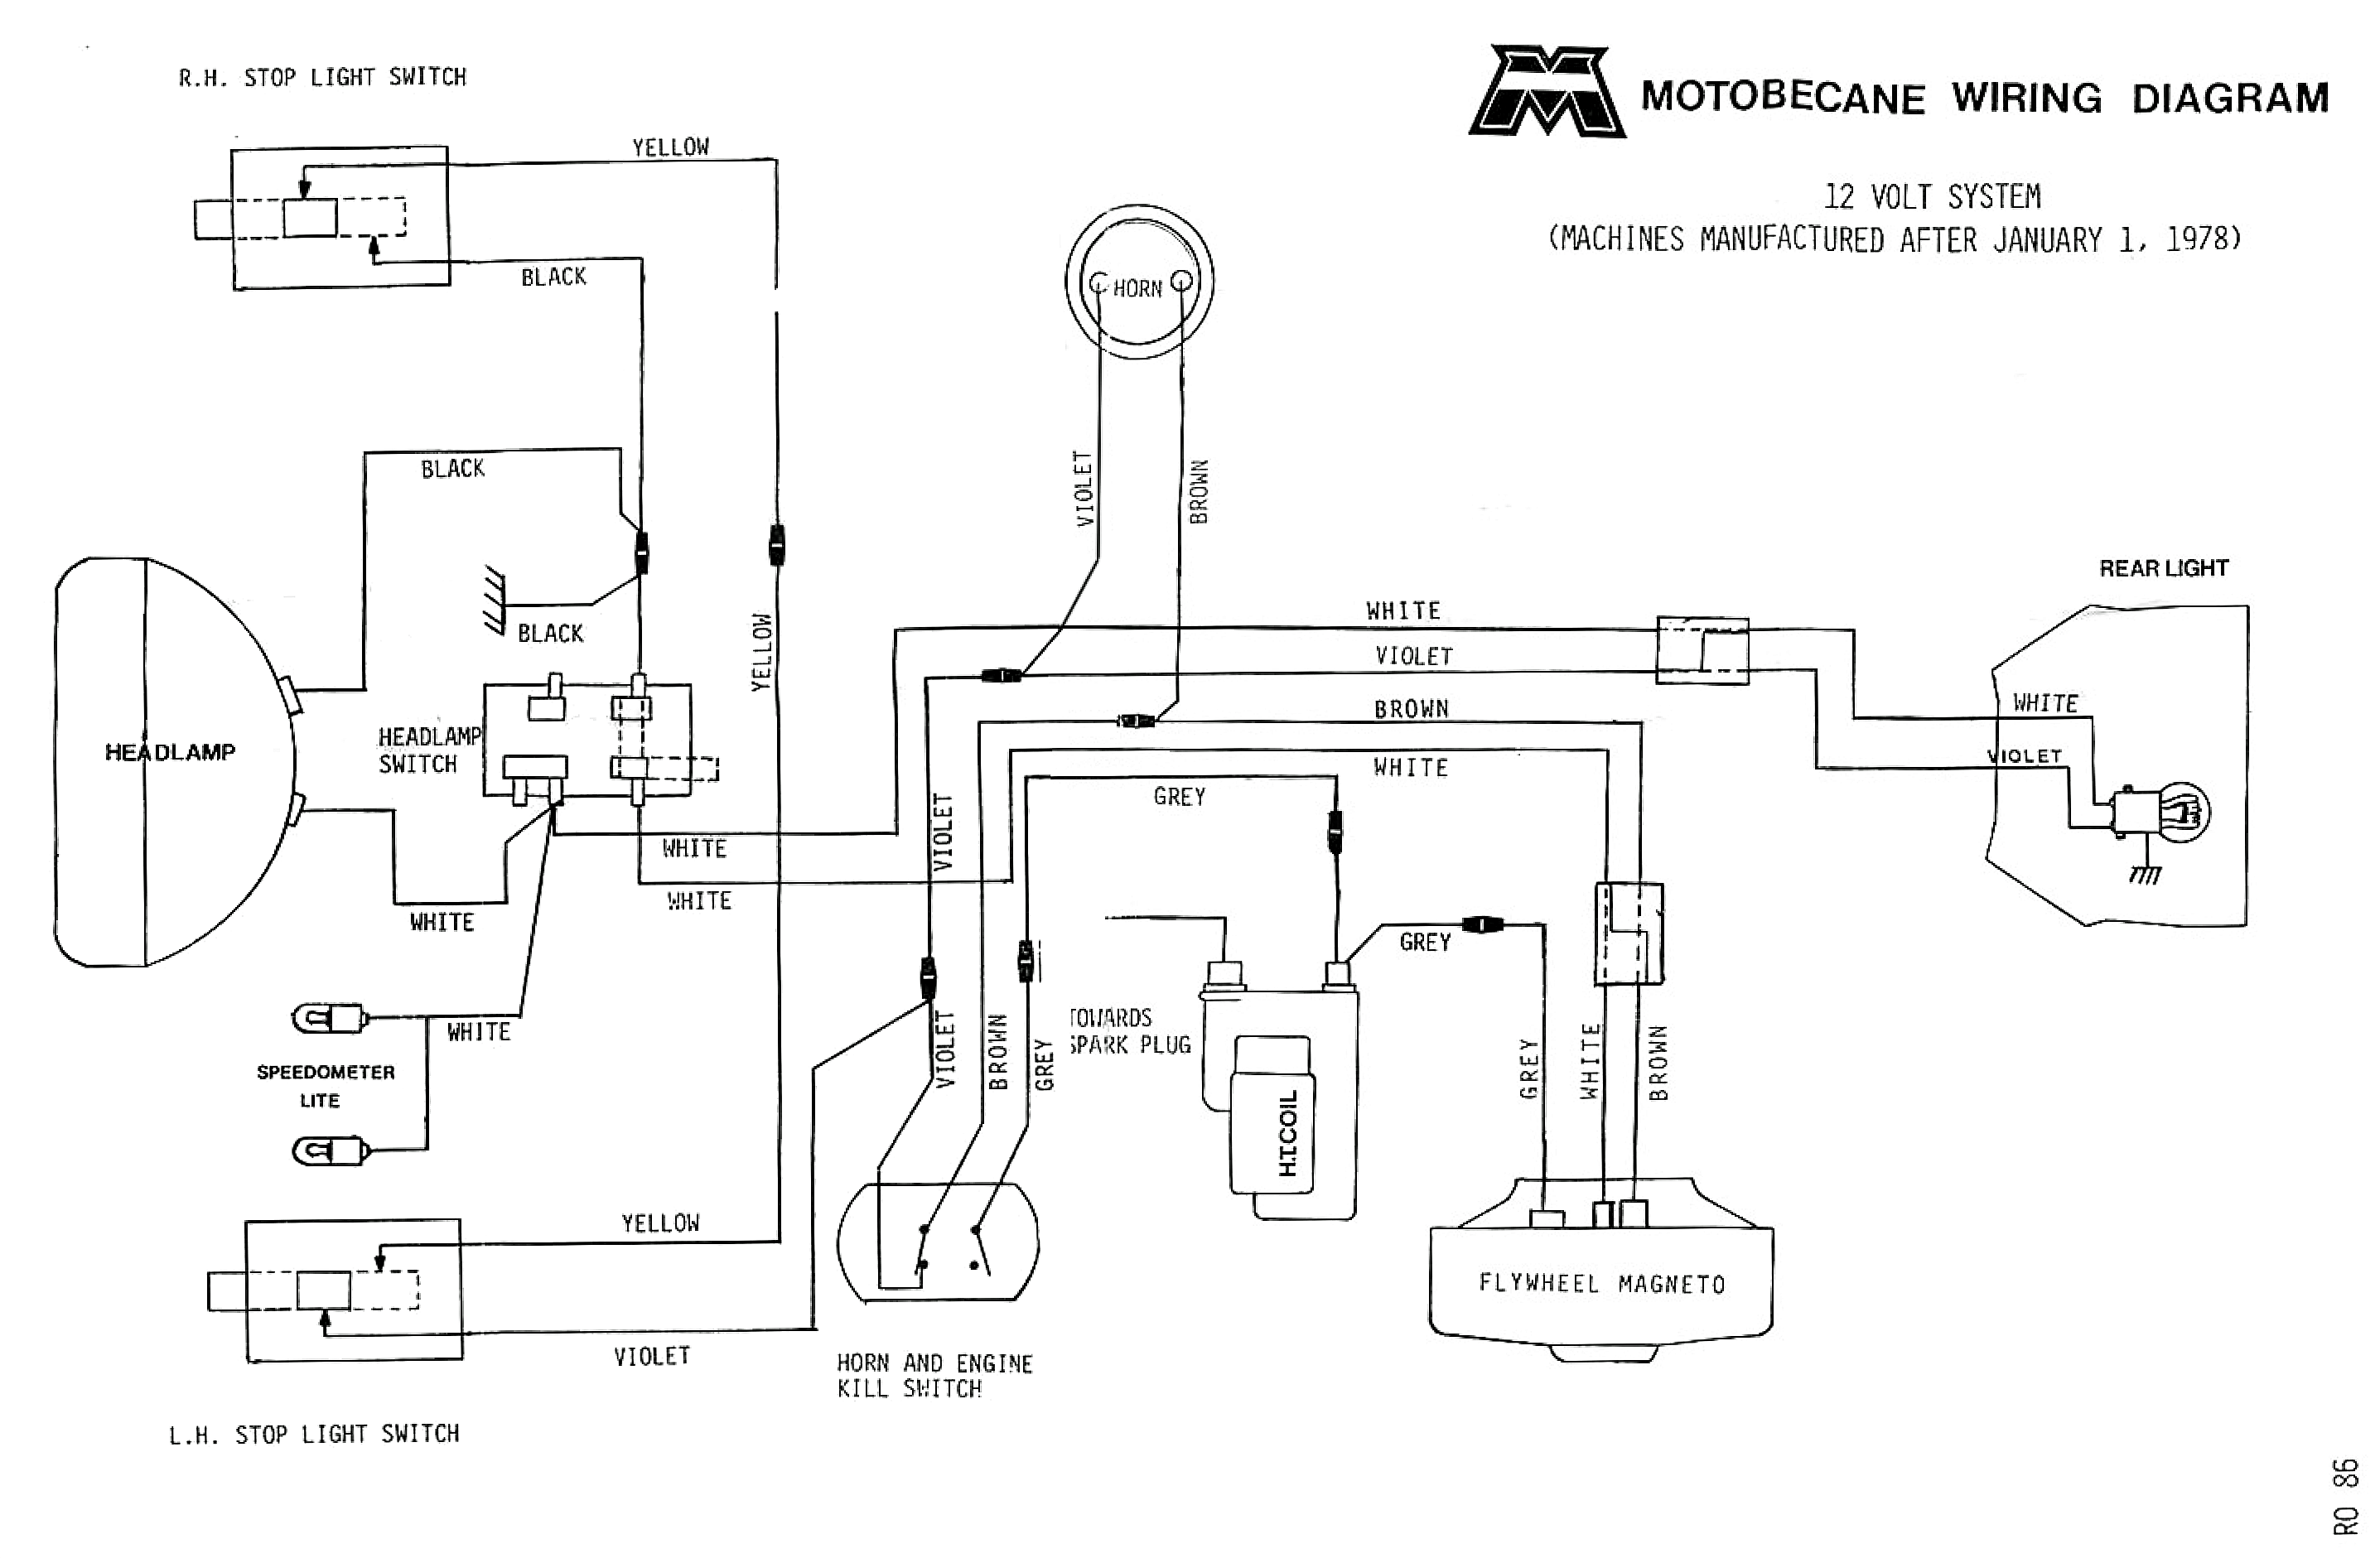 Motobecane Wiring Diagrams Moped Wiki Horn Circuit Diagram Motobecane12v